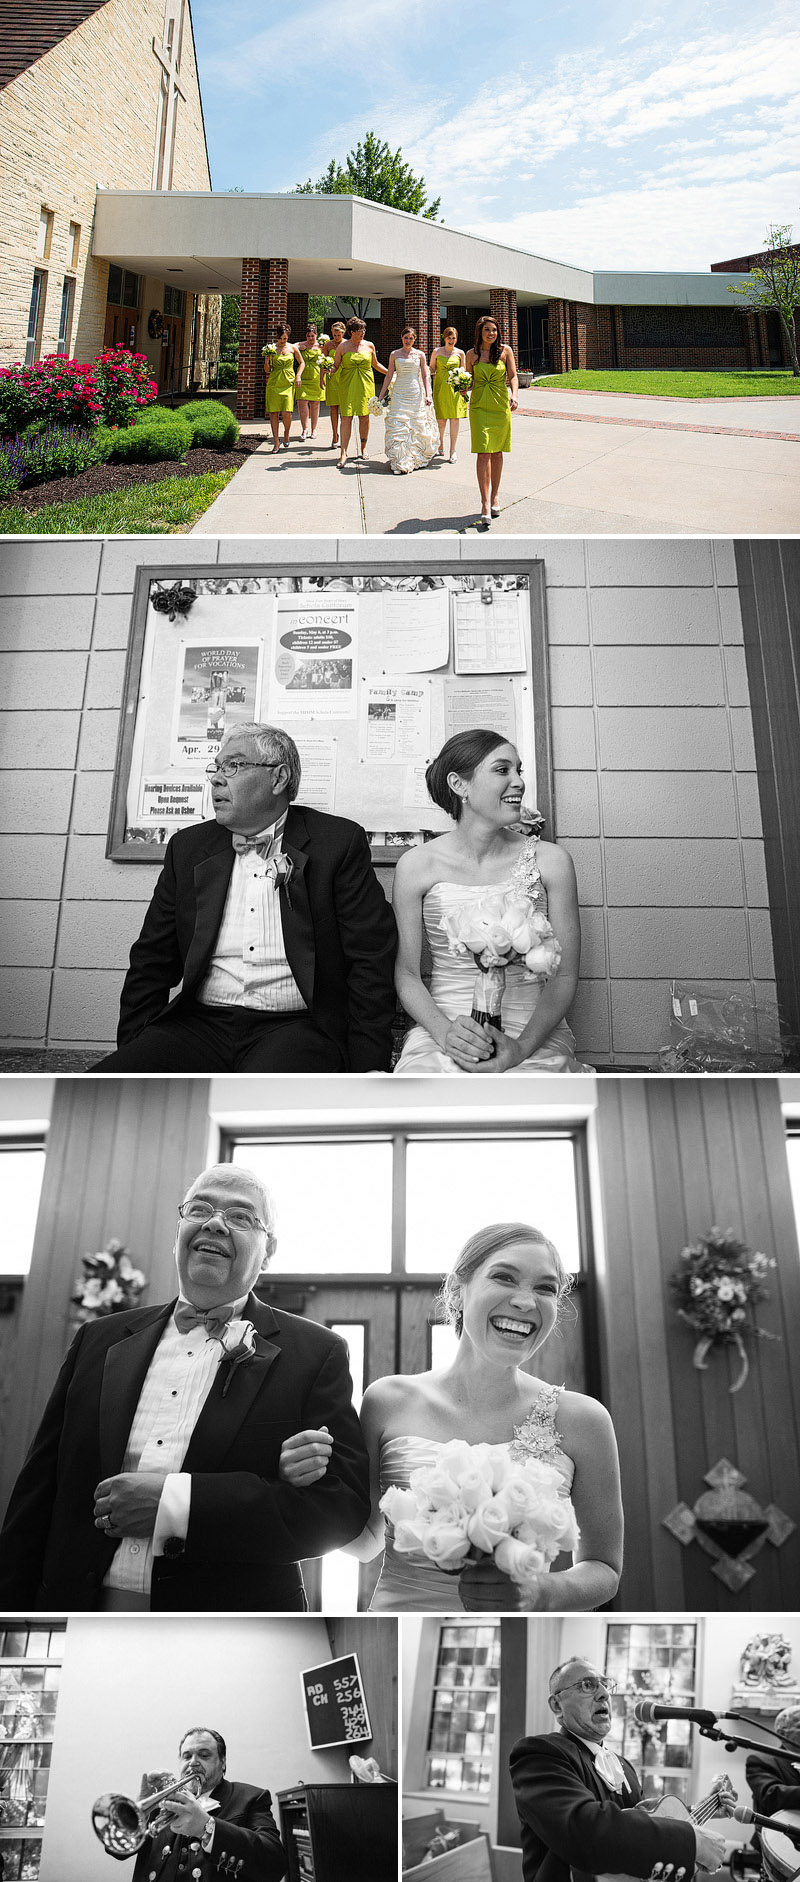 Awesome wedding pictures.